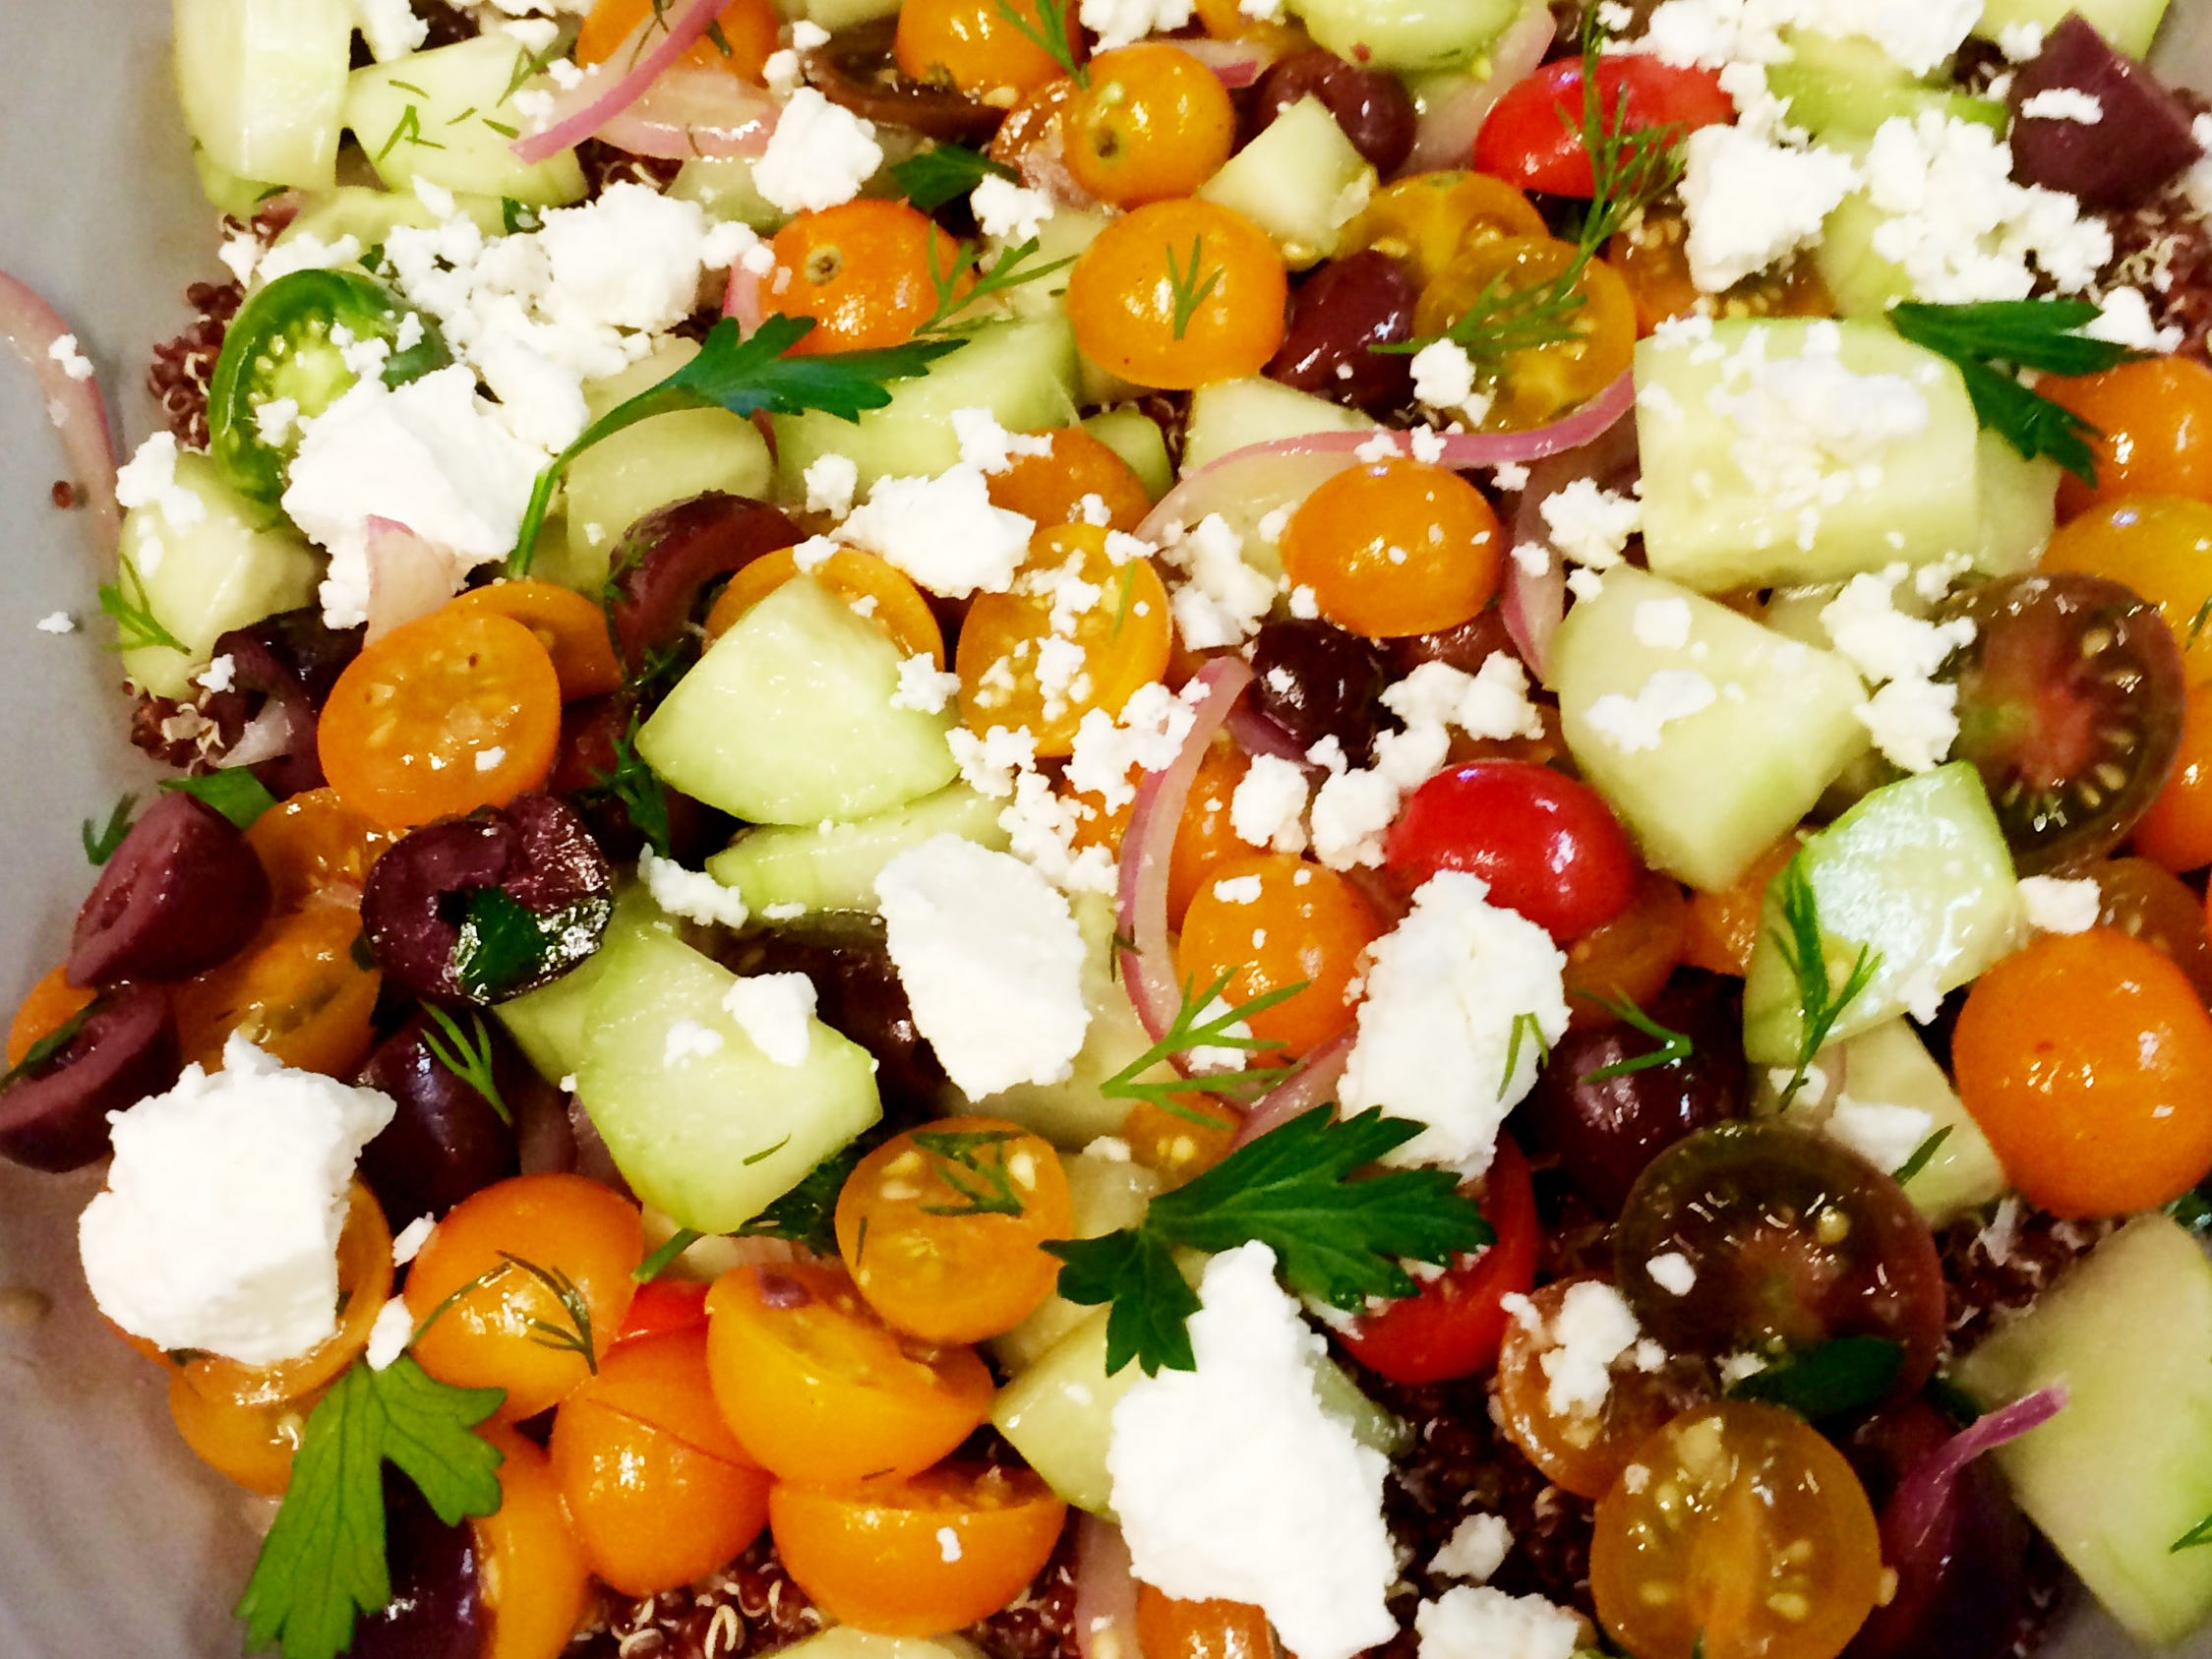 Quinoa Greek salad at Stay Golden restaurant and roastery.